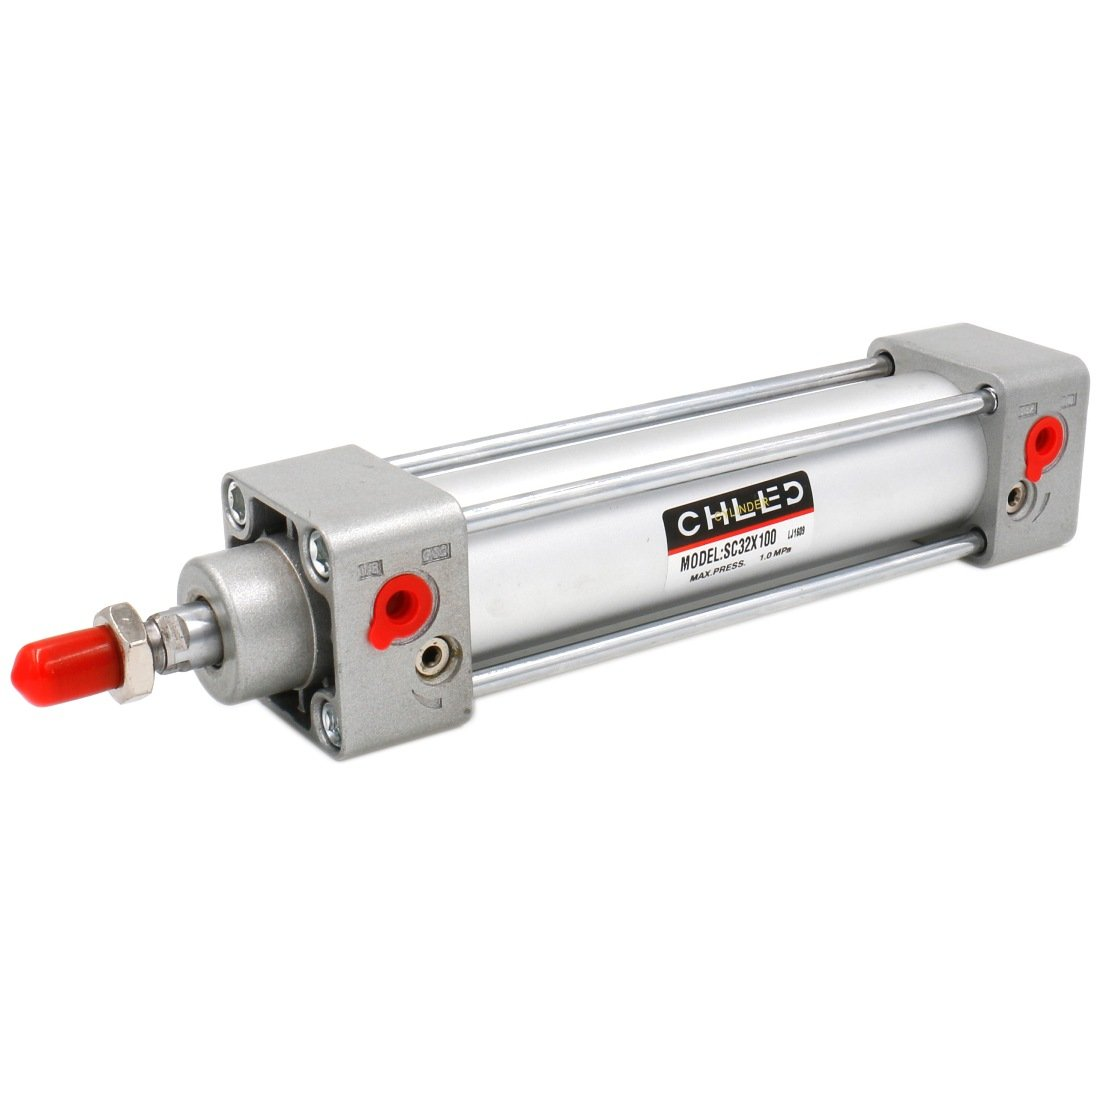 Baomain Pneumatic Air Cylinder SC 32 x 100 PT 1/8, Bore: 1 1/4 inch, Stroke: 4 inch, Screwed Piston Rod Dual Action 1 MPA CHLED